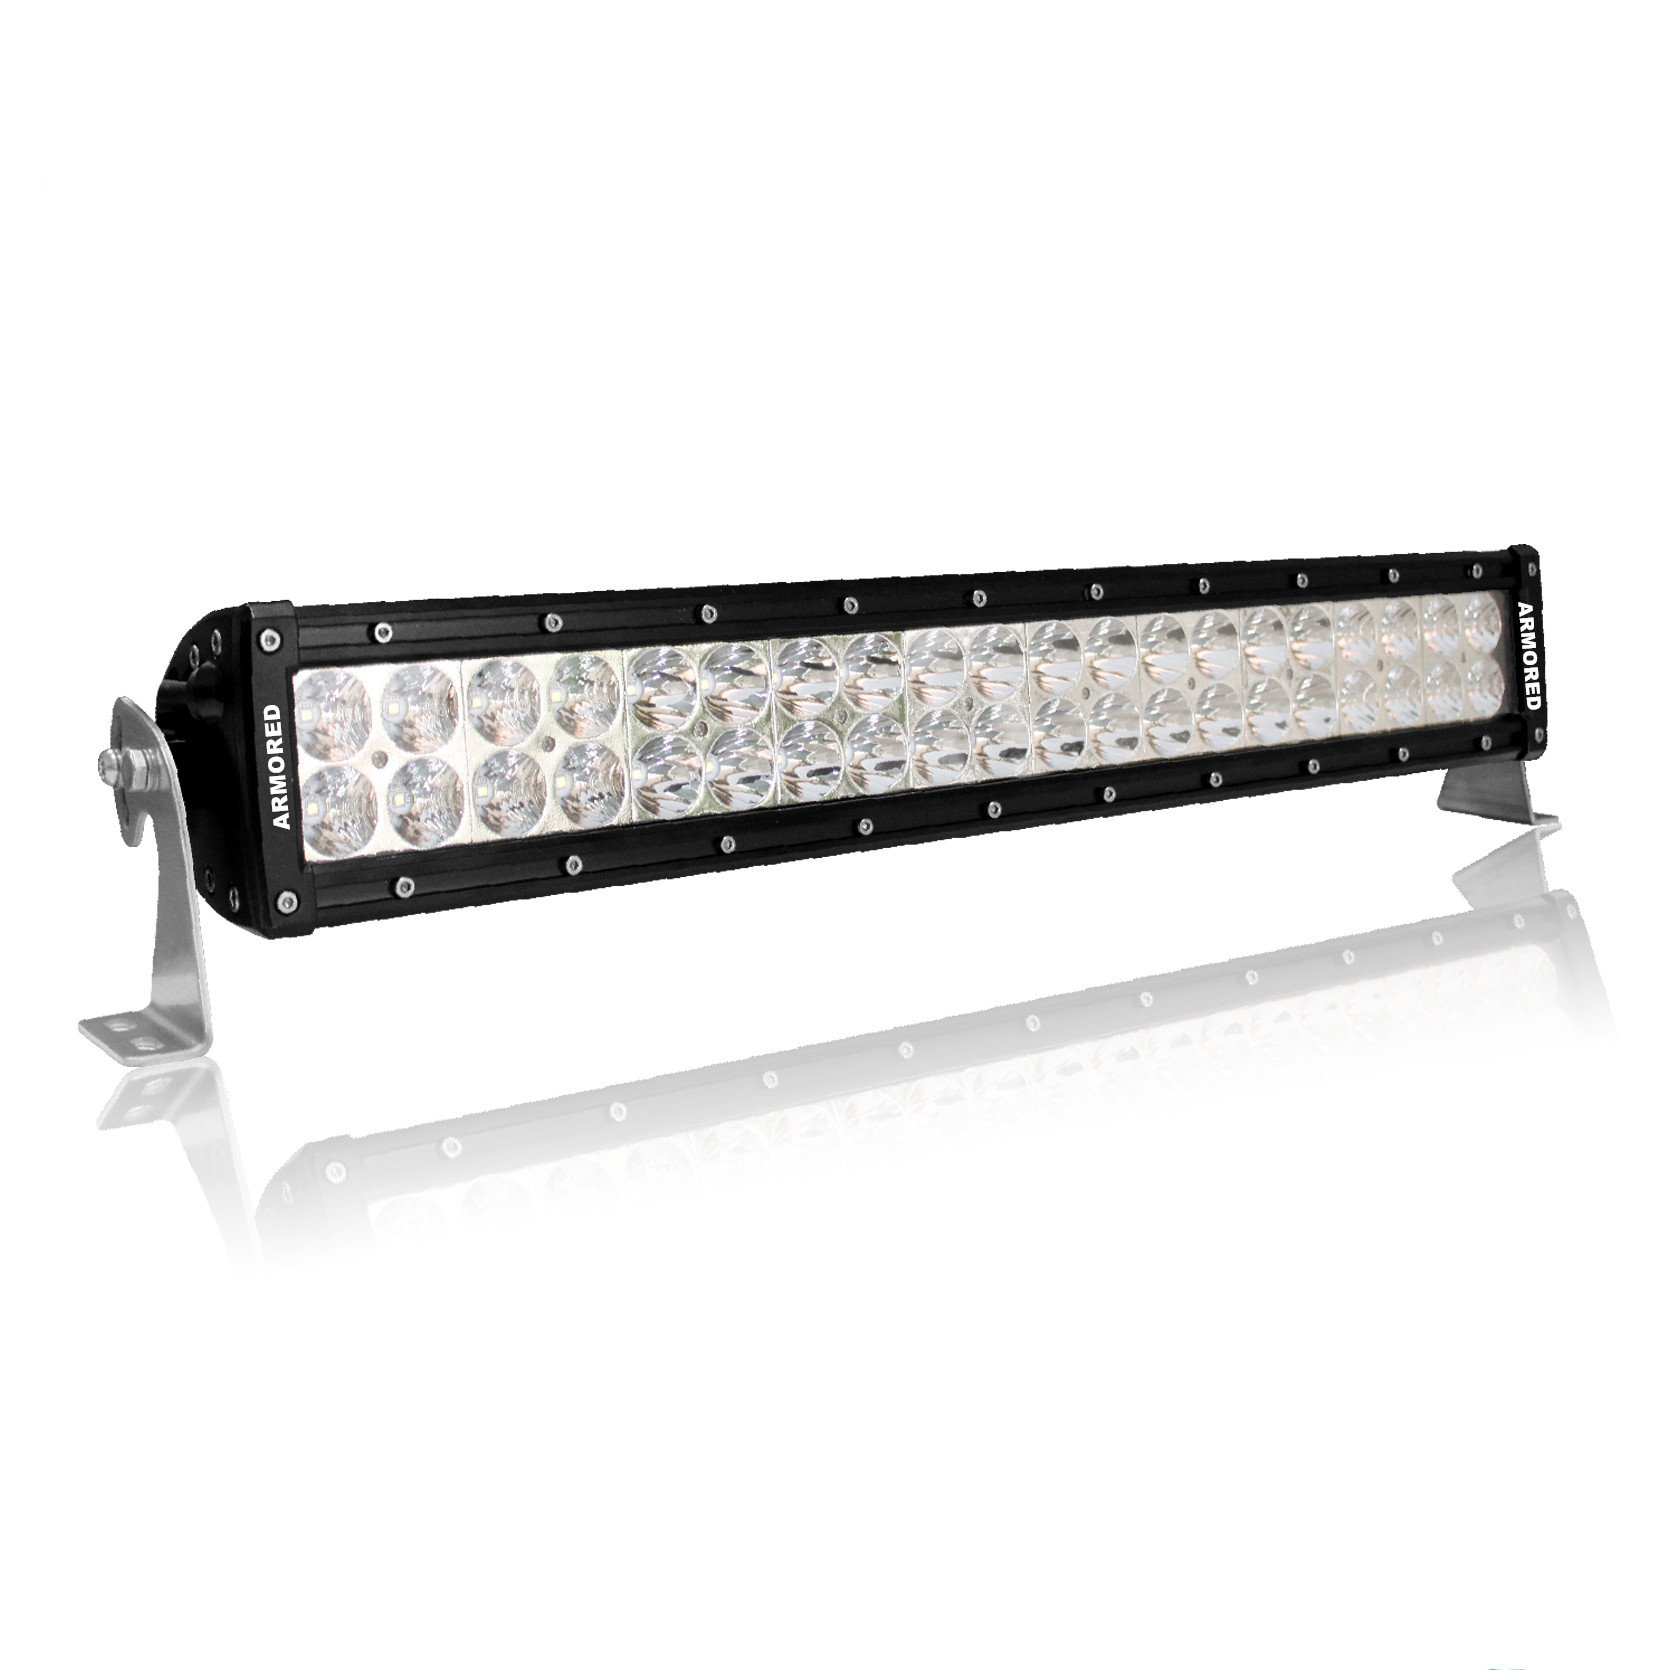 20 inch double row series double row led light bar combo 200w. Black Bedroom Furniture Sets. Home Design Ideas